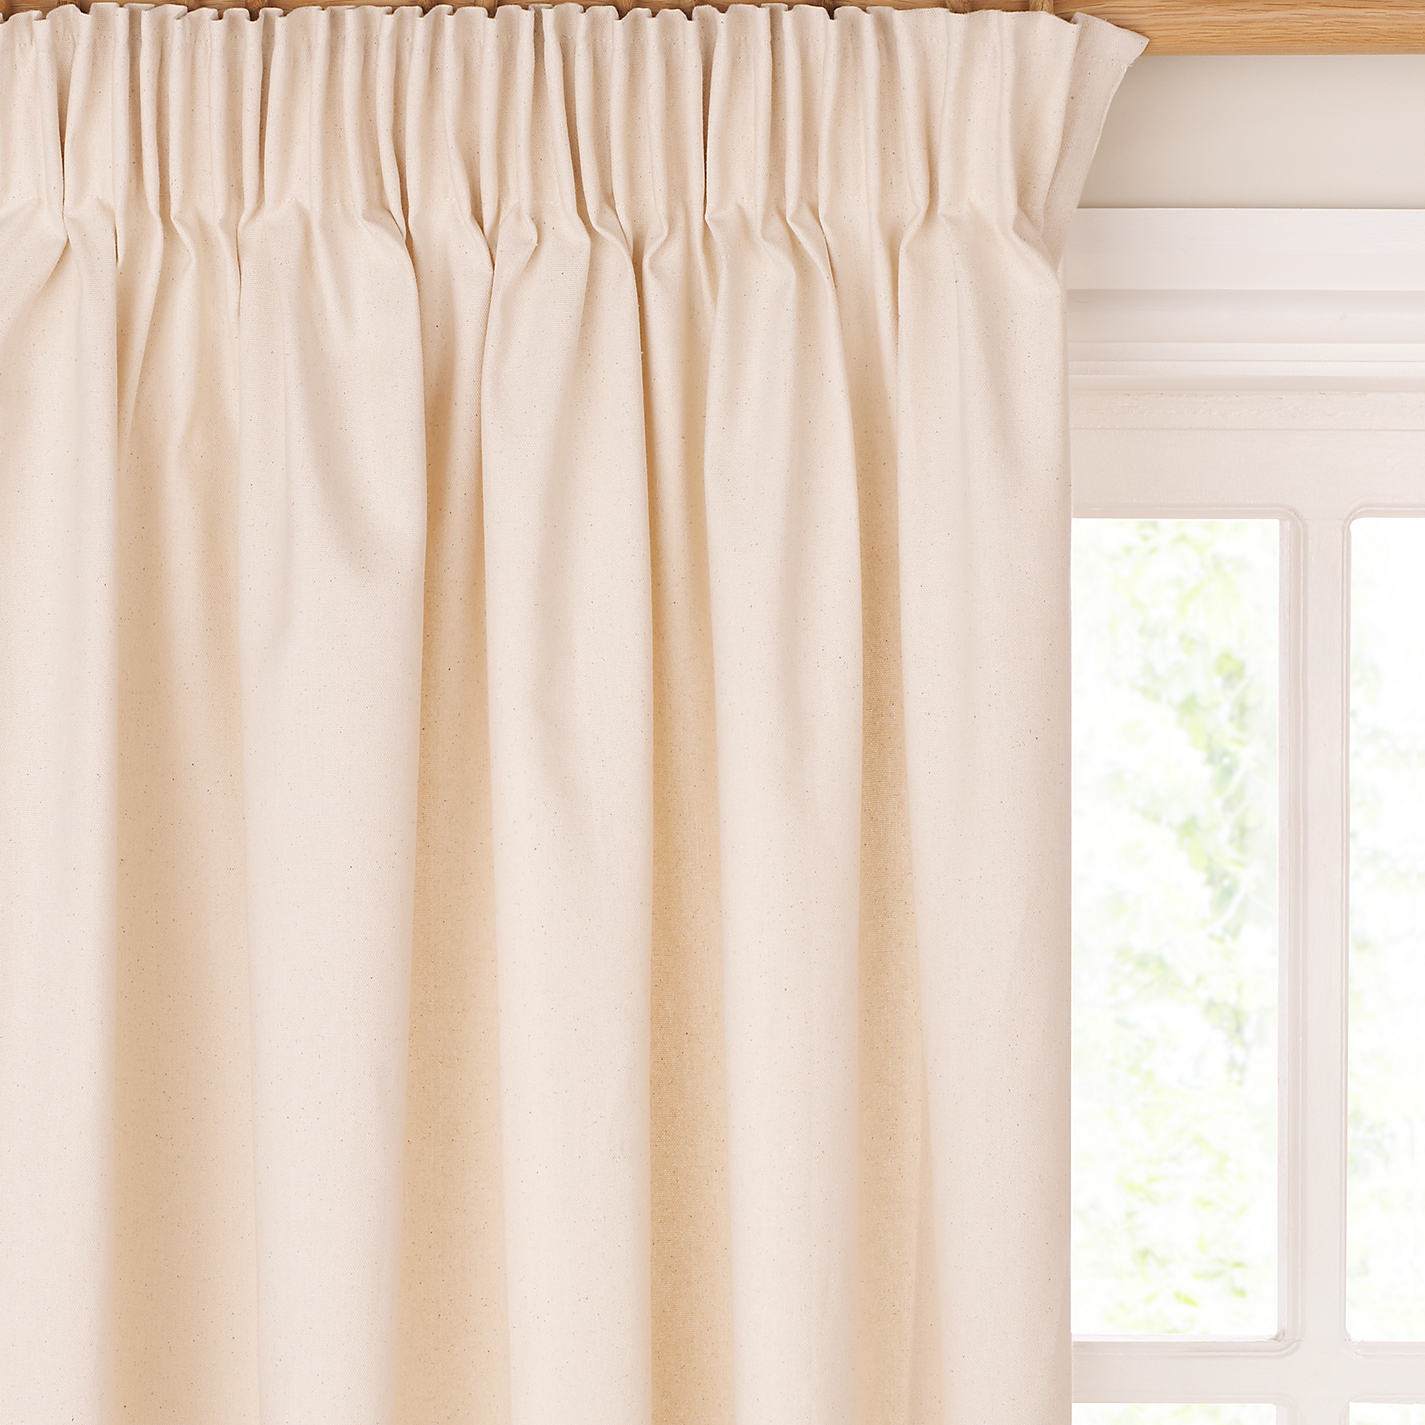 Grey and yellow curtains uk john lewis - Buy John Lewis The Basics Plain Cotton Unlined Pencil Pleat Curtains Natural Online At Johnlewis